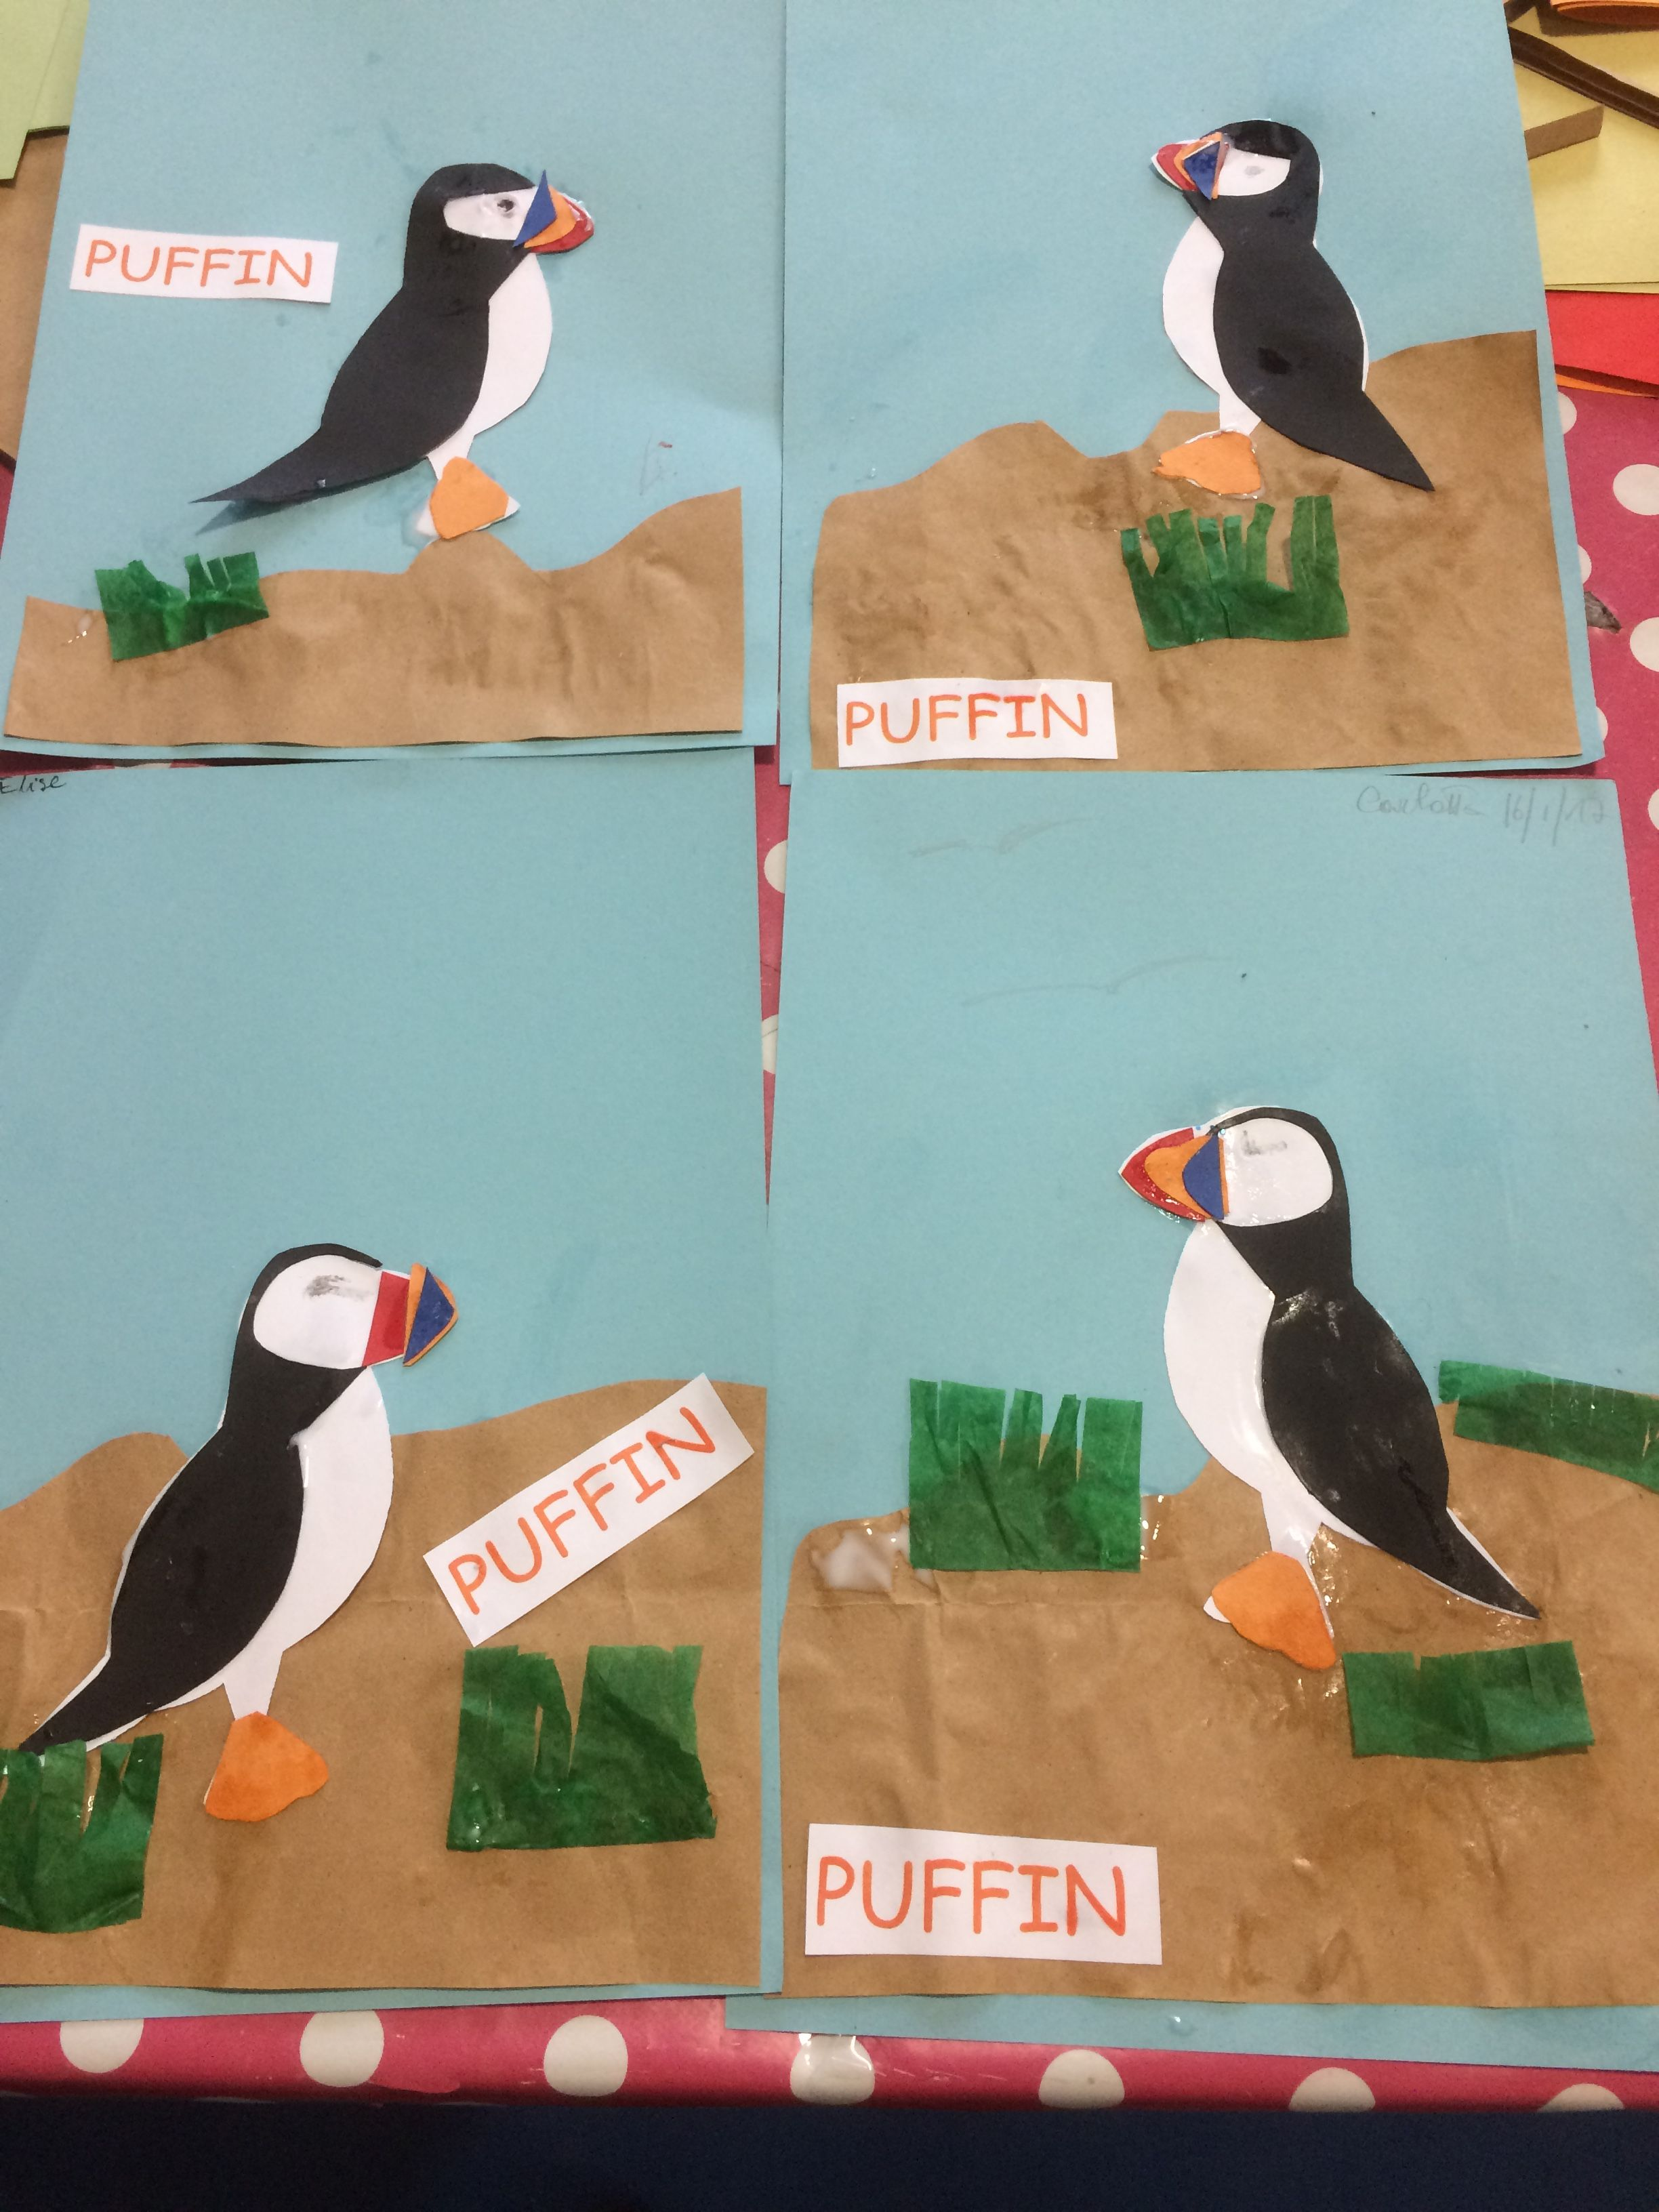 Puffins Or Pufflings School Ideas Crafts For Kids Playgroup